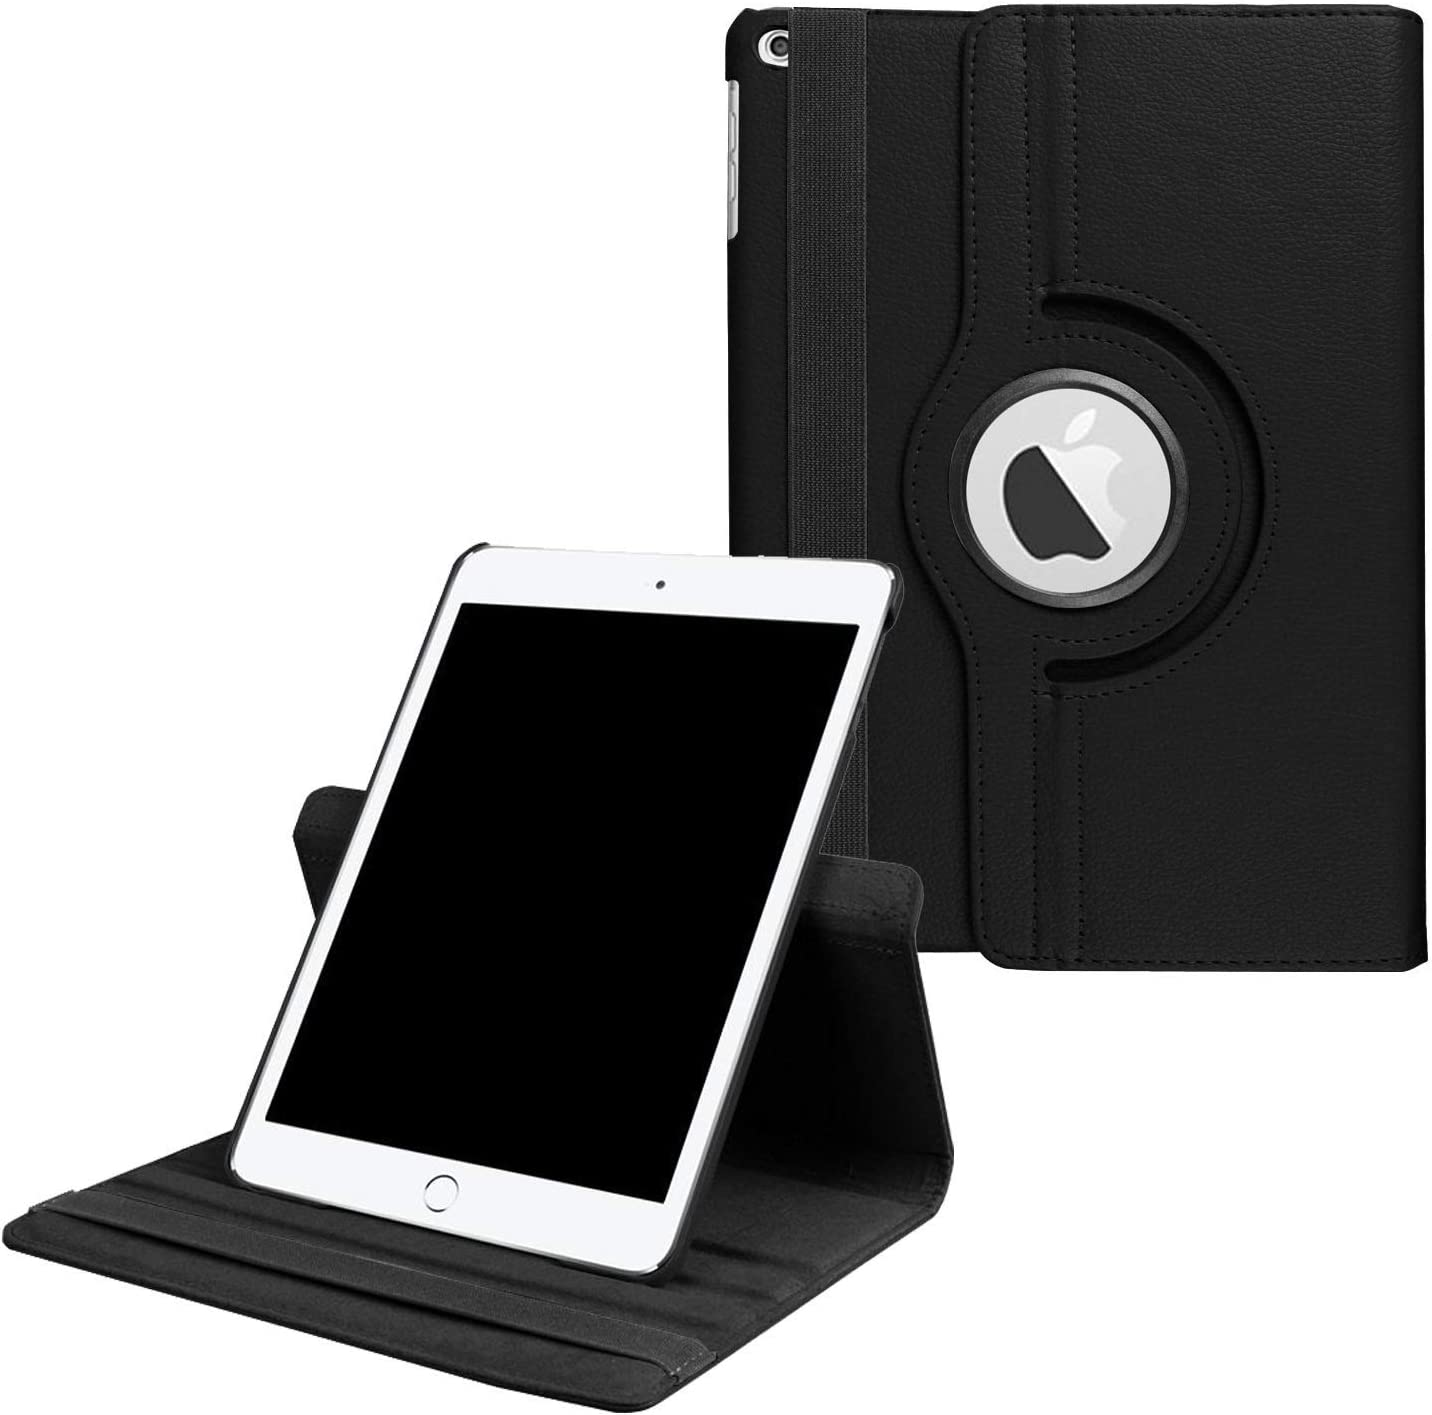 """Rayhee iPad Case for New iPad 8th Gen (2020) / 7th Generation (2019) 10.2 Inch,360 Degree Rotating Stand Smart Cover with Auto Sleep Wake for New iPad 10.2"""" Case(Black)"""